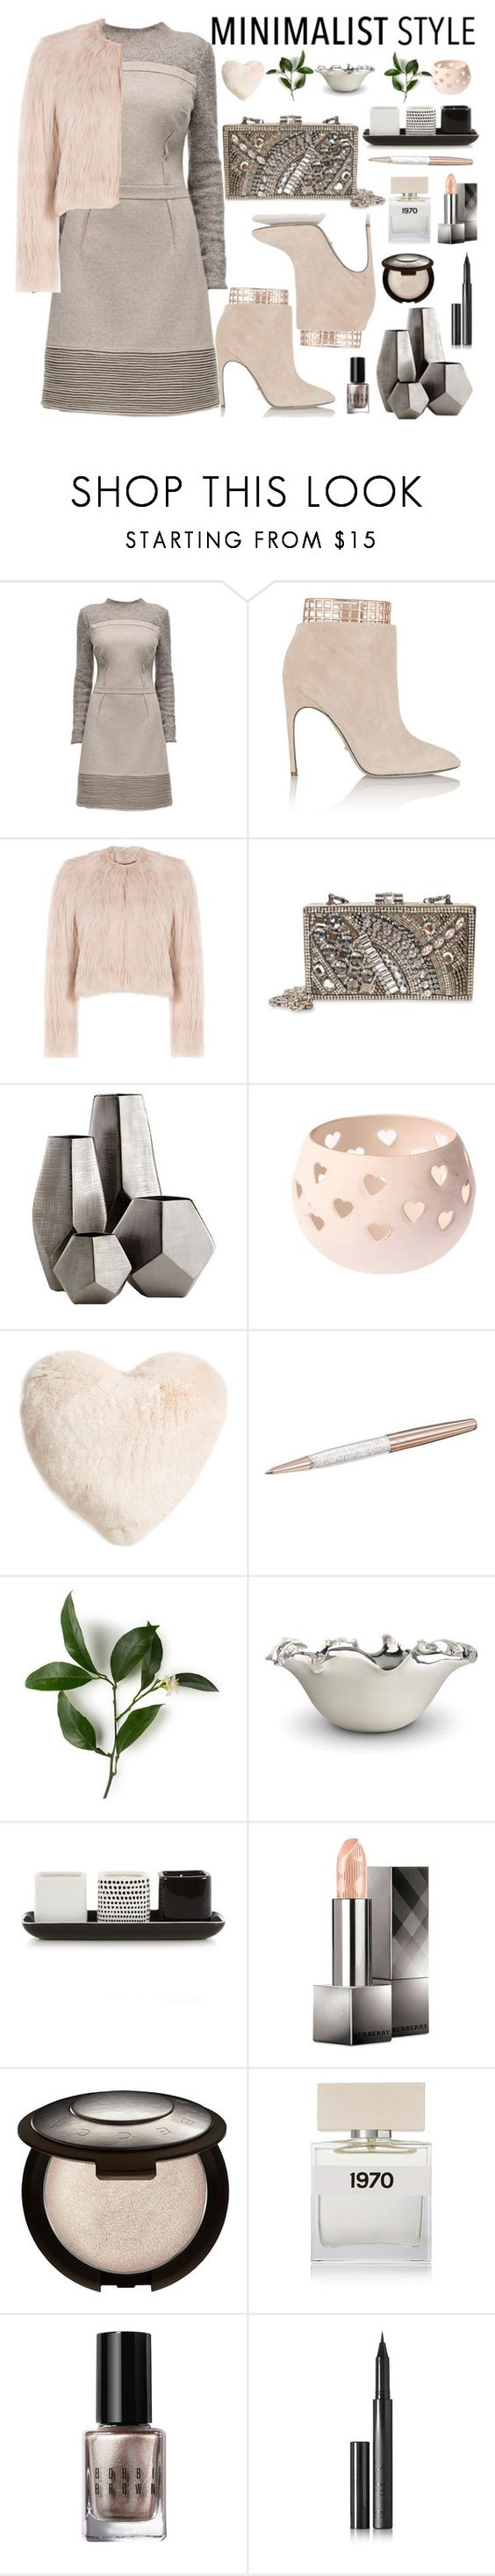 """""""Minimalist Style"""" by sneky ❤ liked on Polyvore featuring Lattori, Sergio Rossi, RED Valentino, Mary Frances Accessories, Cyan Design, Nordstrom, Swarovski, L'Objet, Betty Jackson and Burberry"""